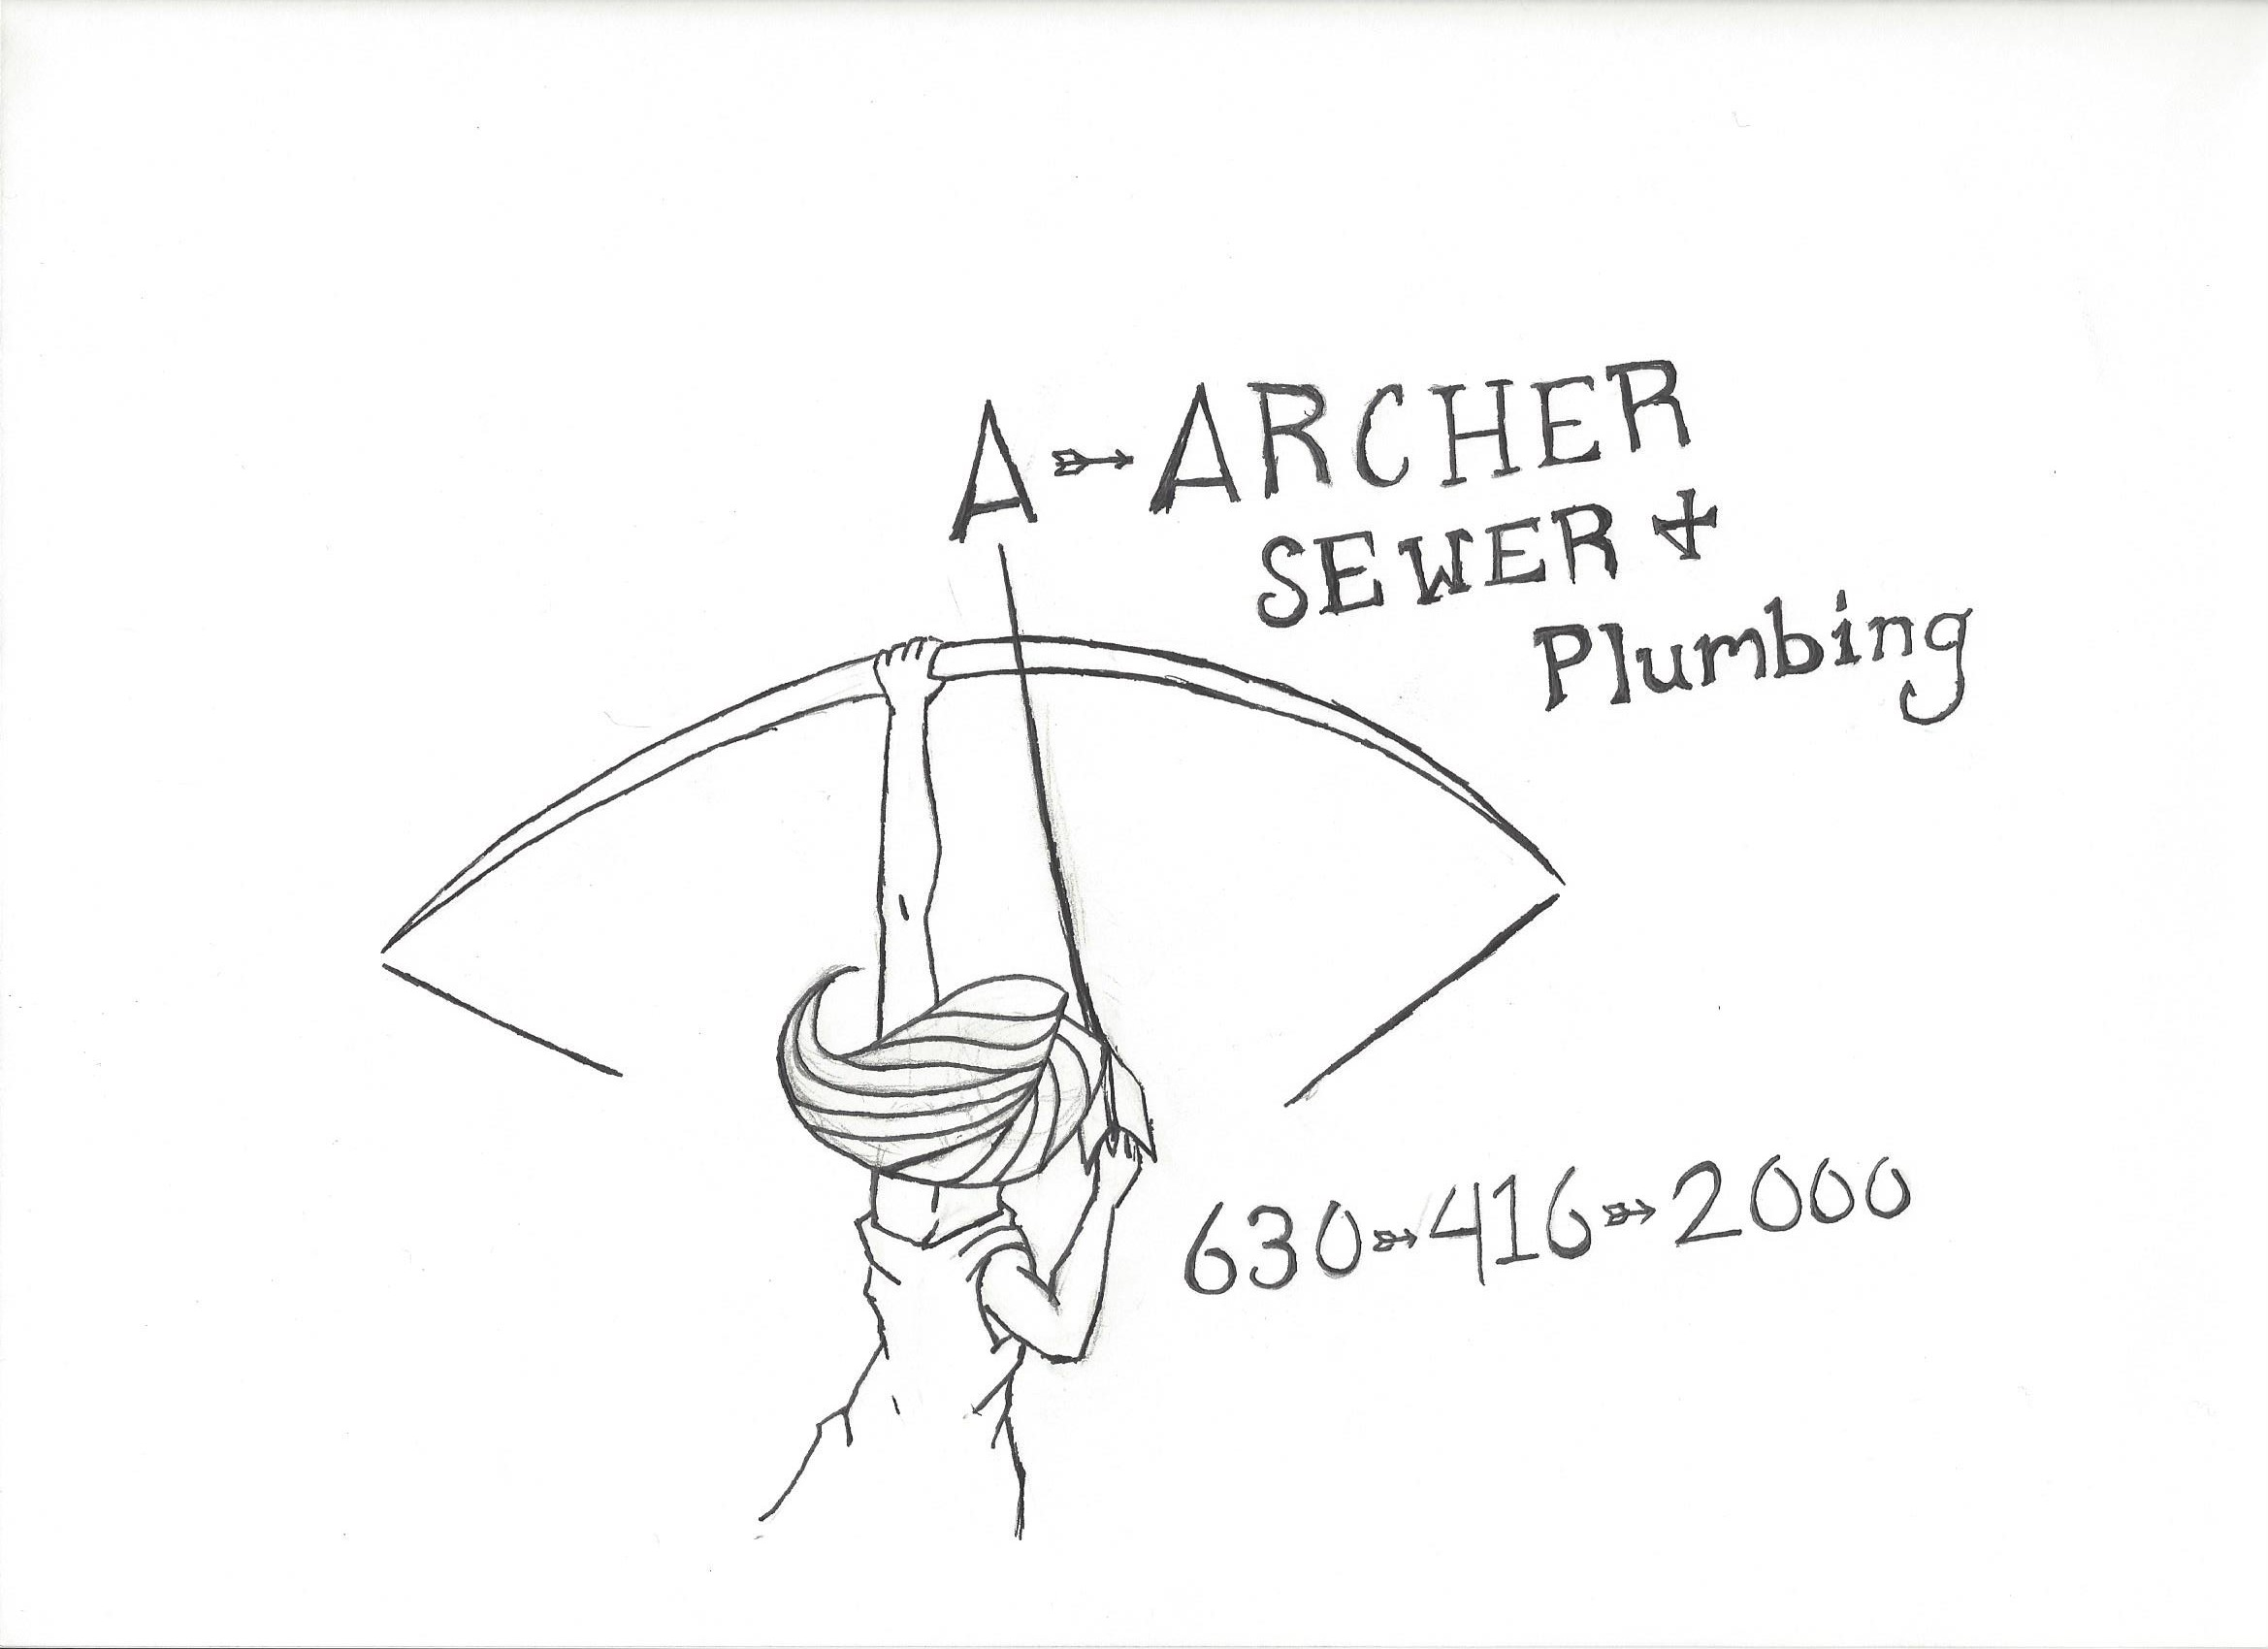 services structure home pipes emergency charlotte er monroe nc system your homes terms plumbing blog s definitions